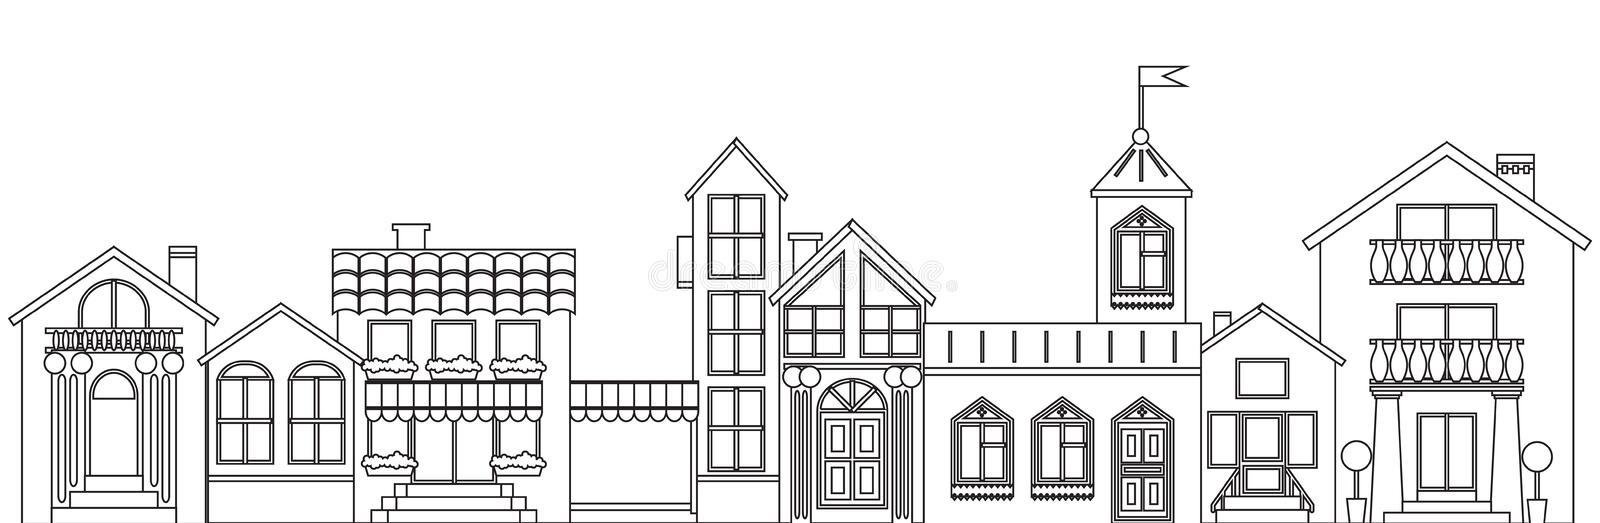 Old european town contour. Vector isolated houses outline illustration.  stock illustration